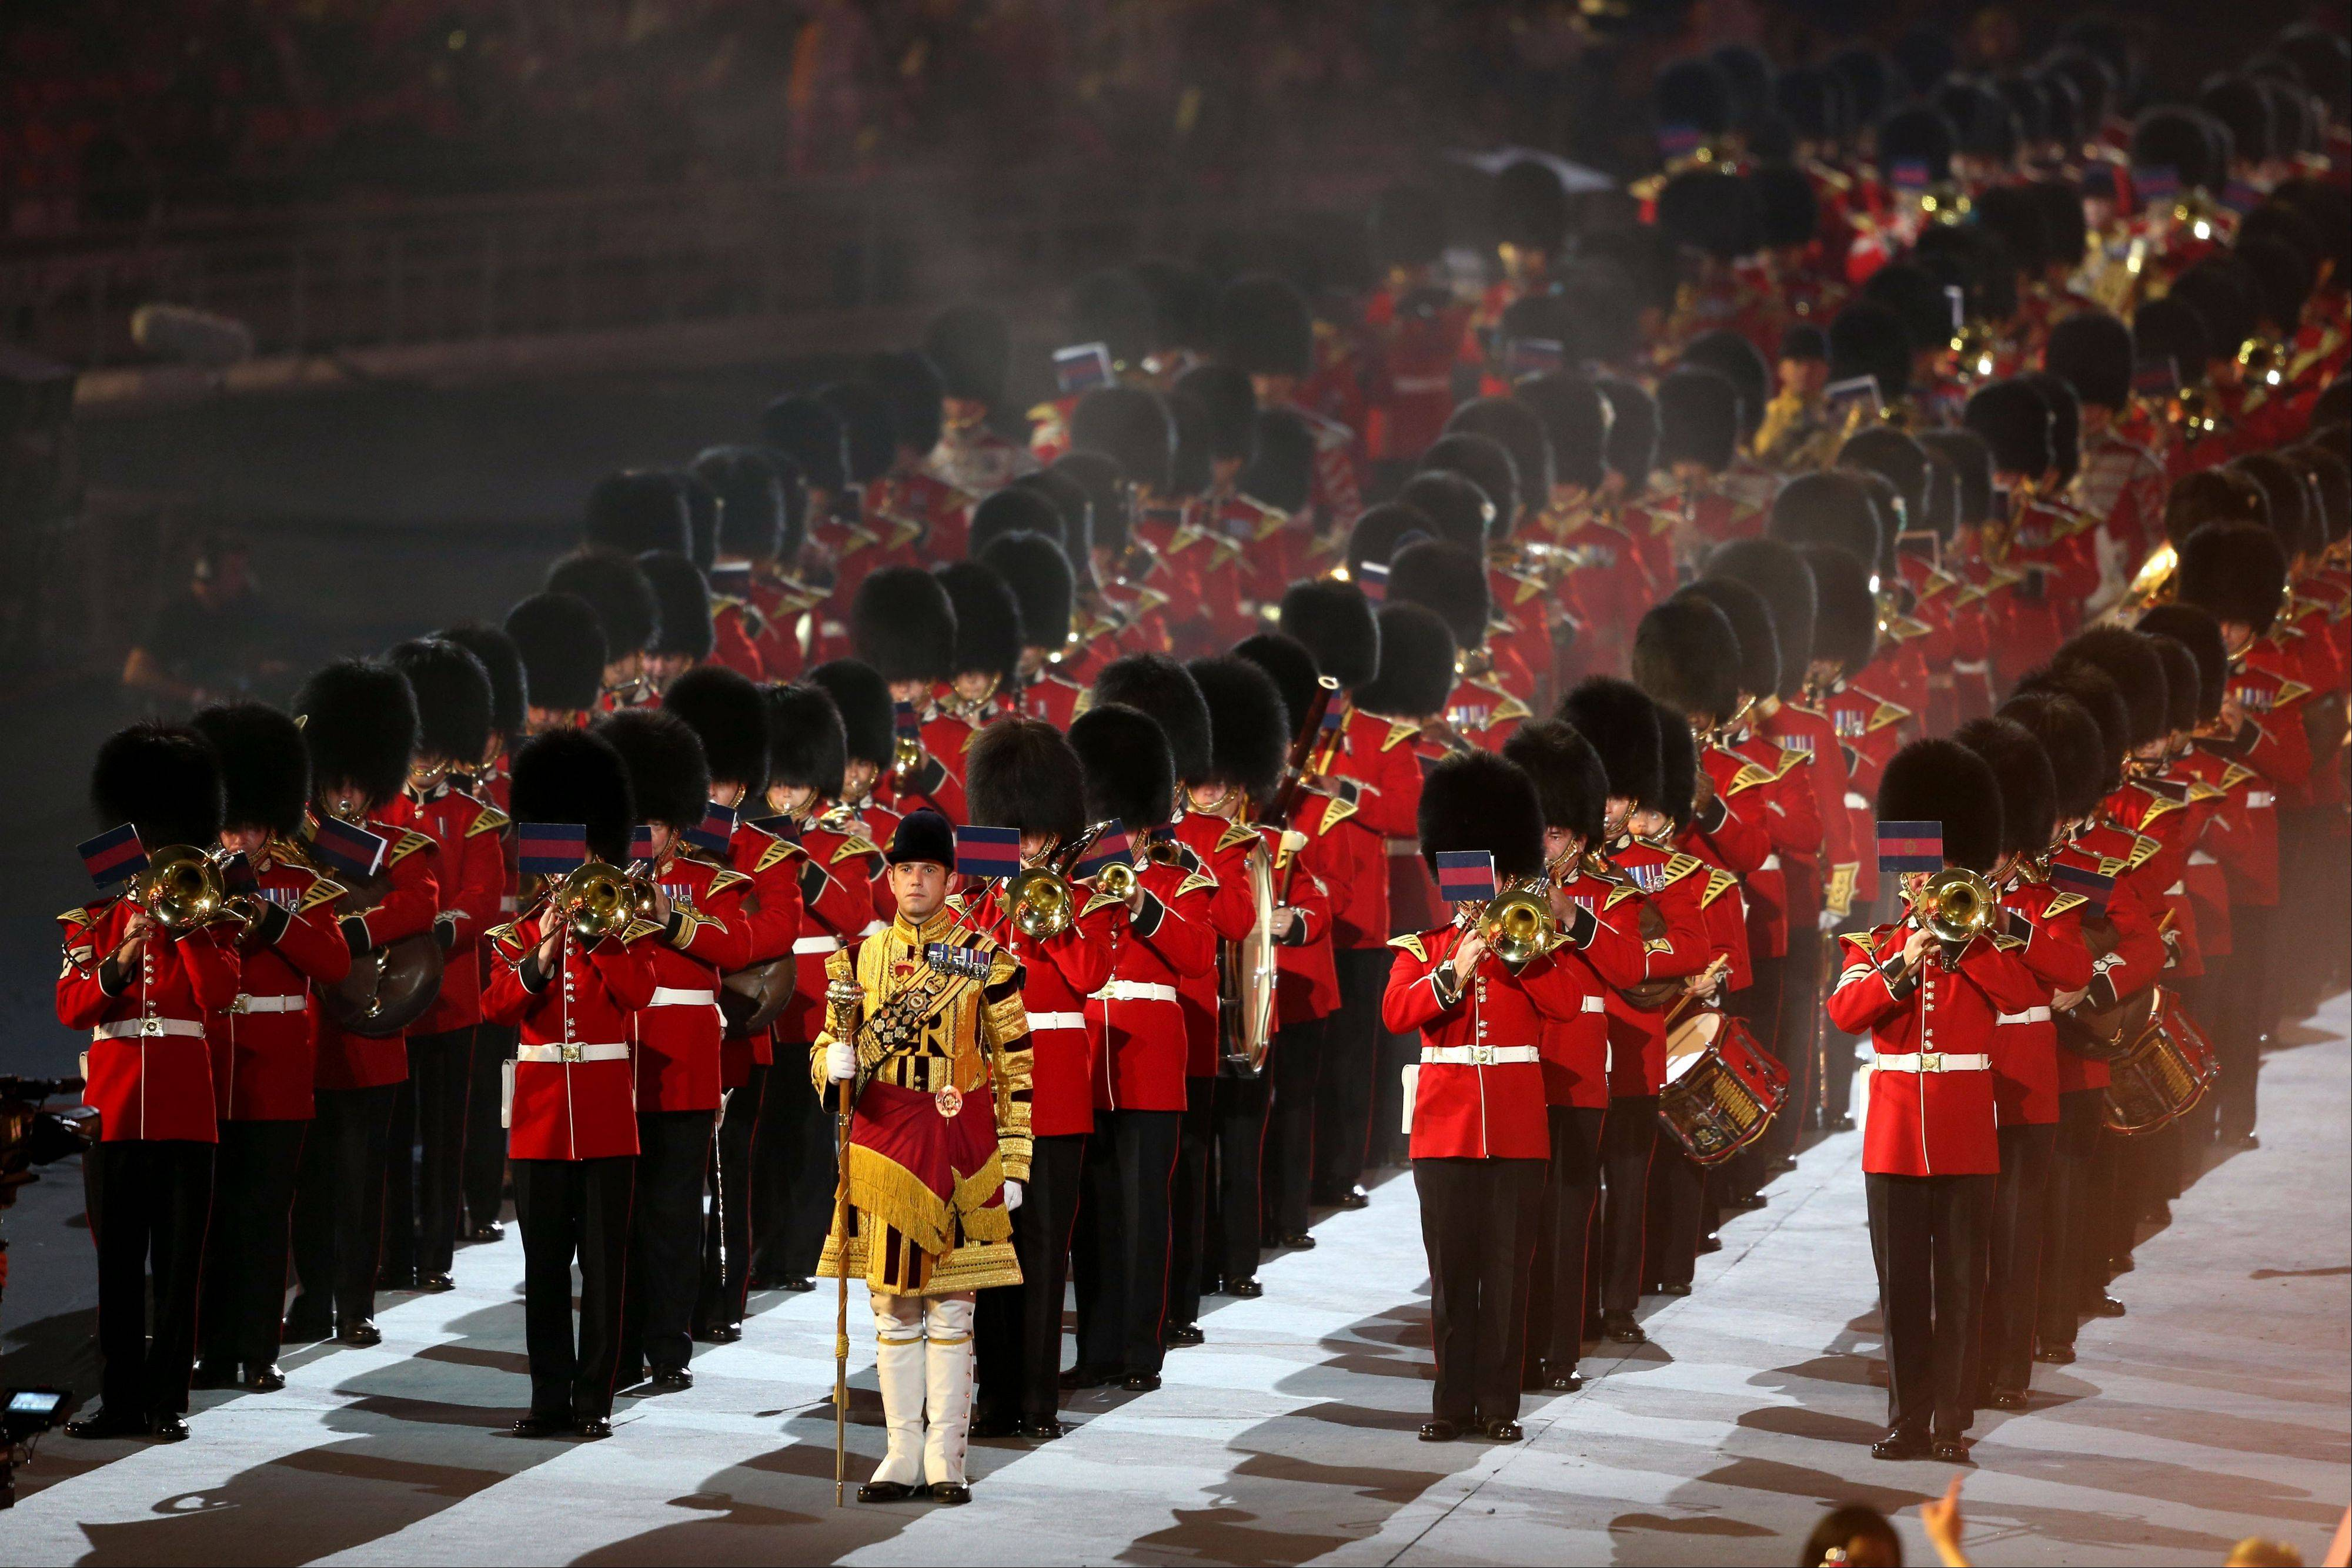 A British military marching band performs during the Closing Ceremony at the 2012 Summer Olympics.